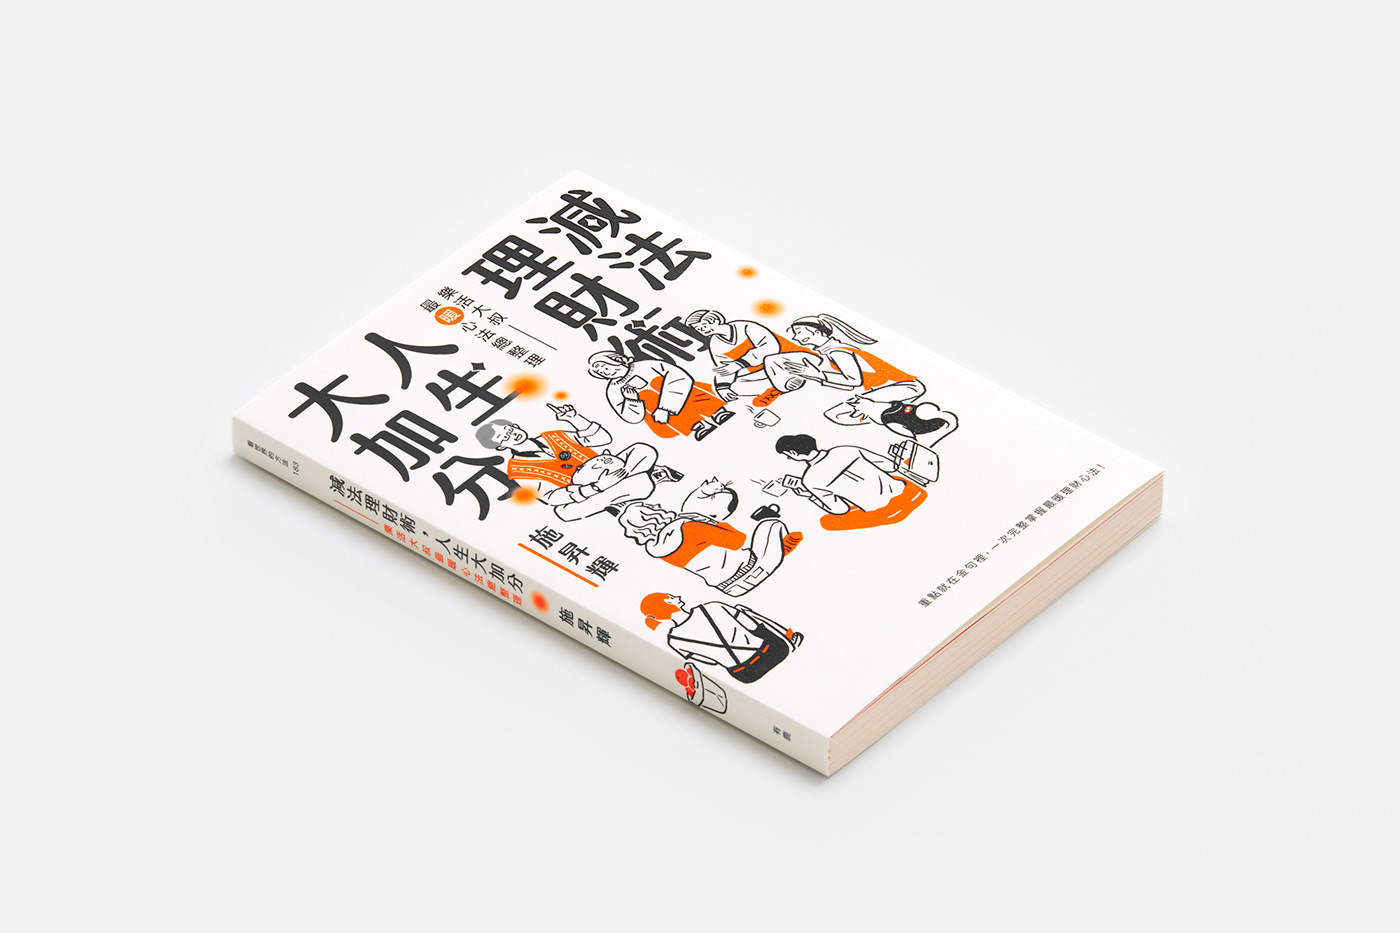 Bookdesign coverdesign graphicdesign Layout